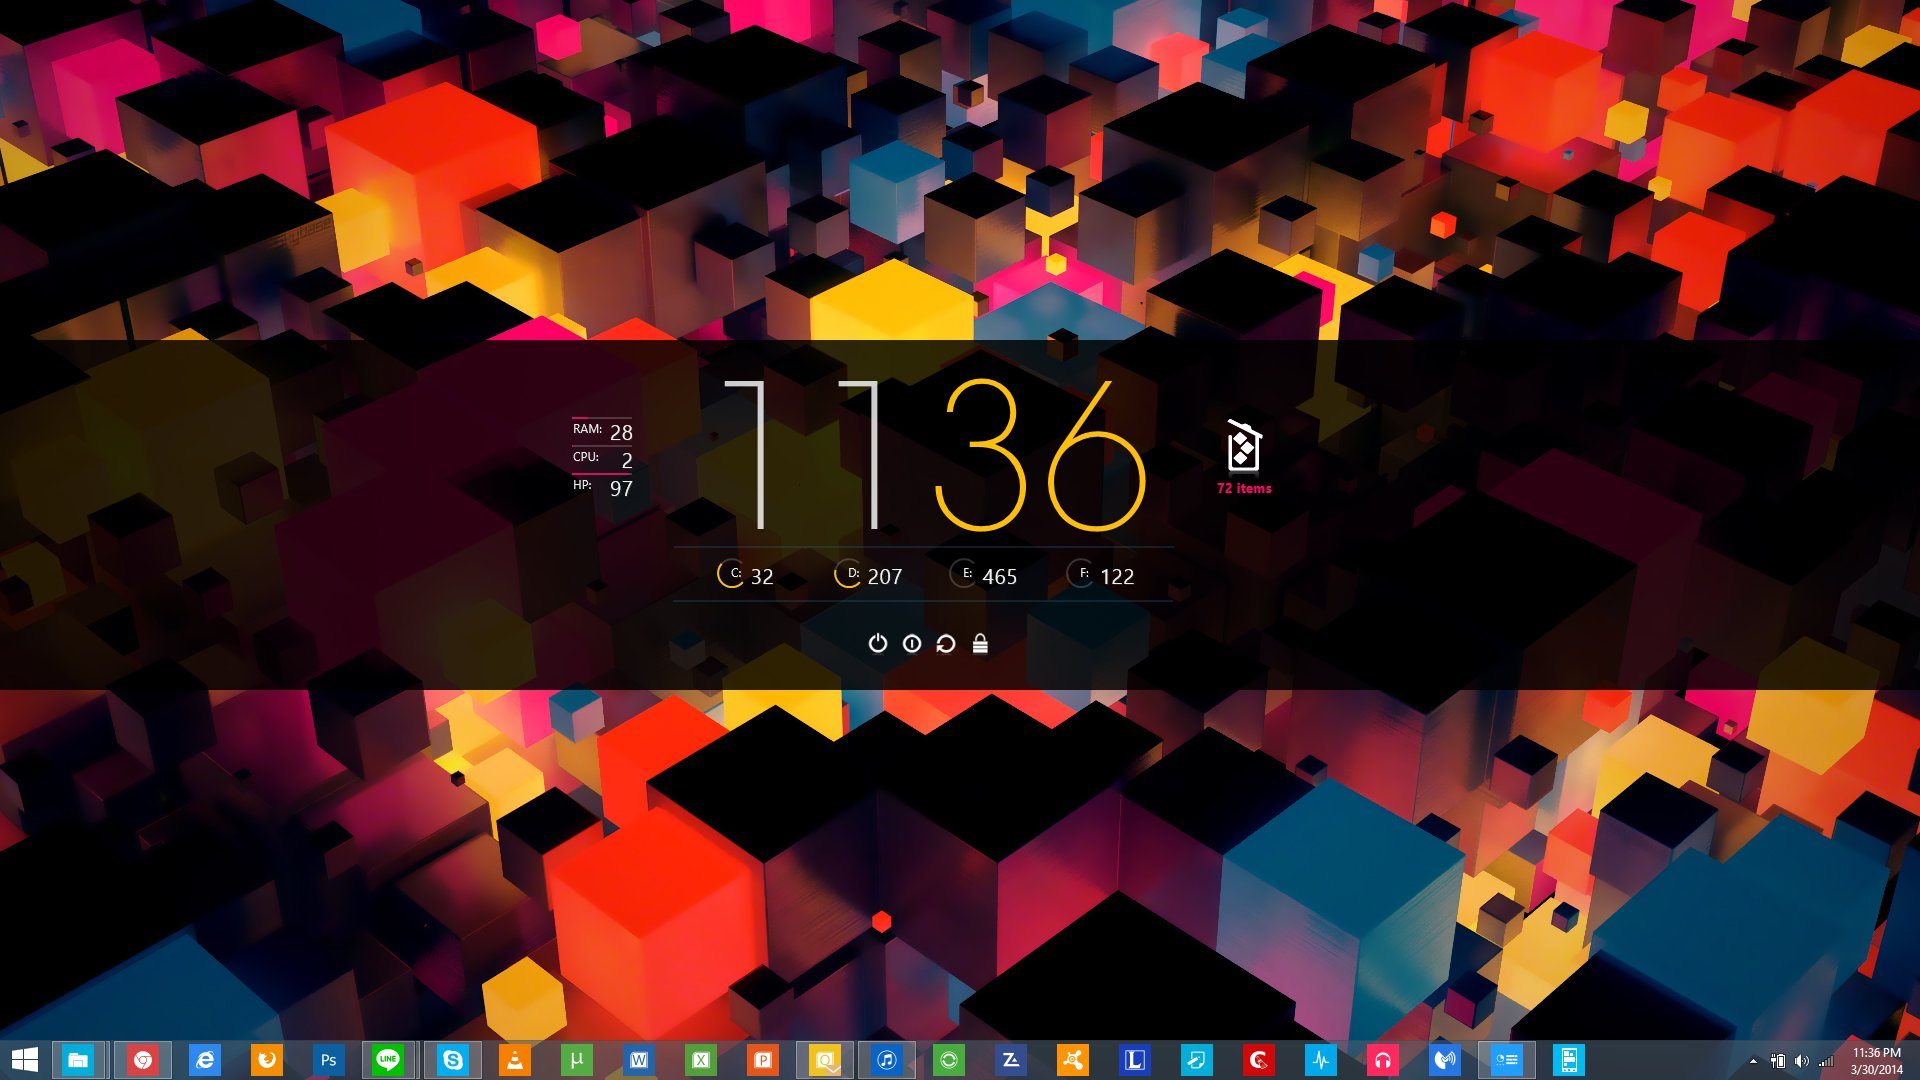 Look How Gorgeous Windows 8 Can Become with Some Tweaks